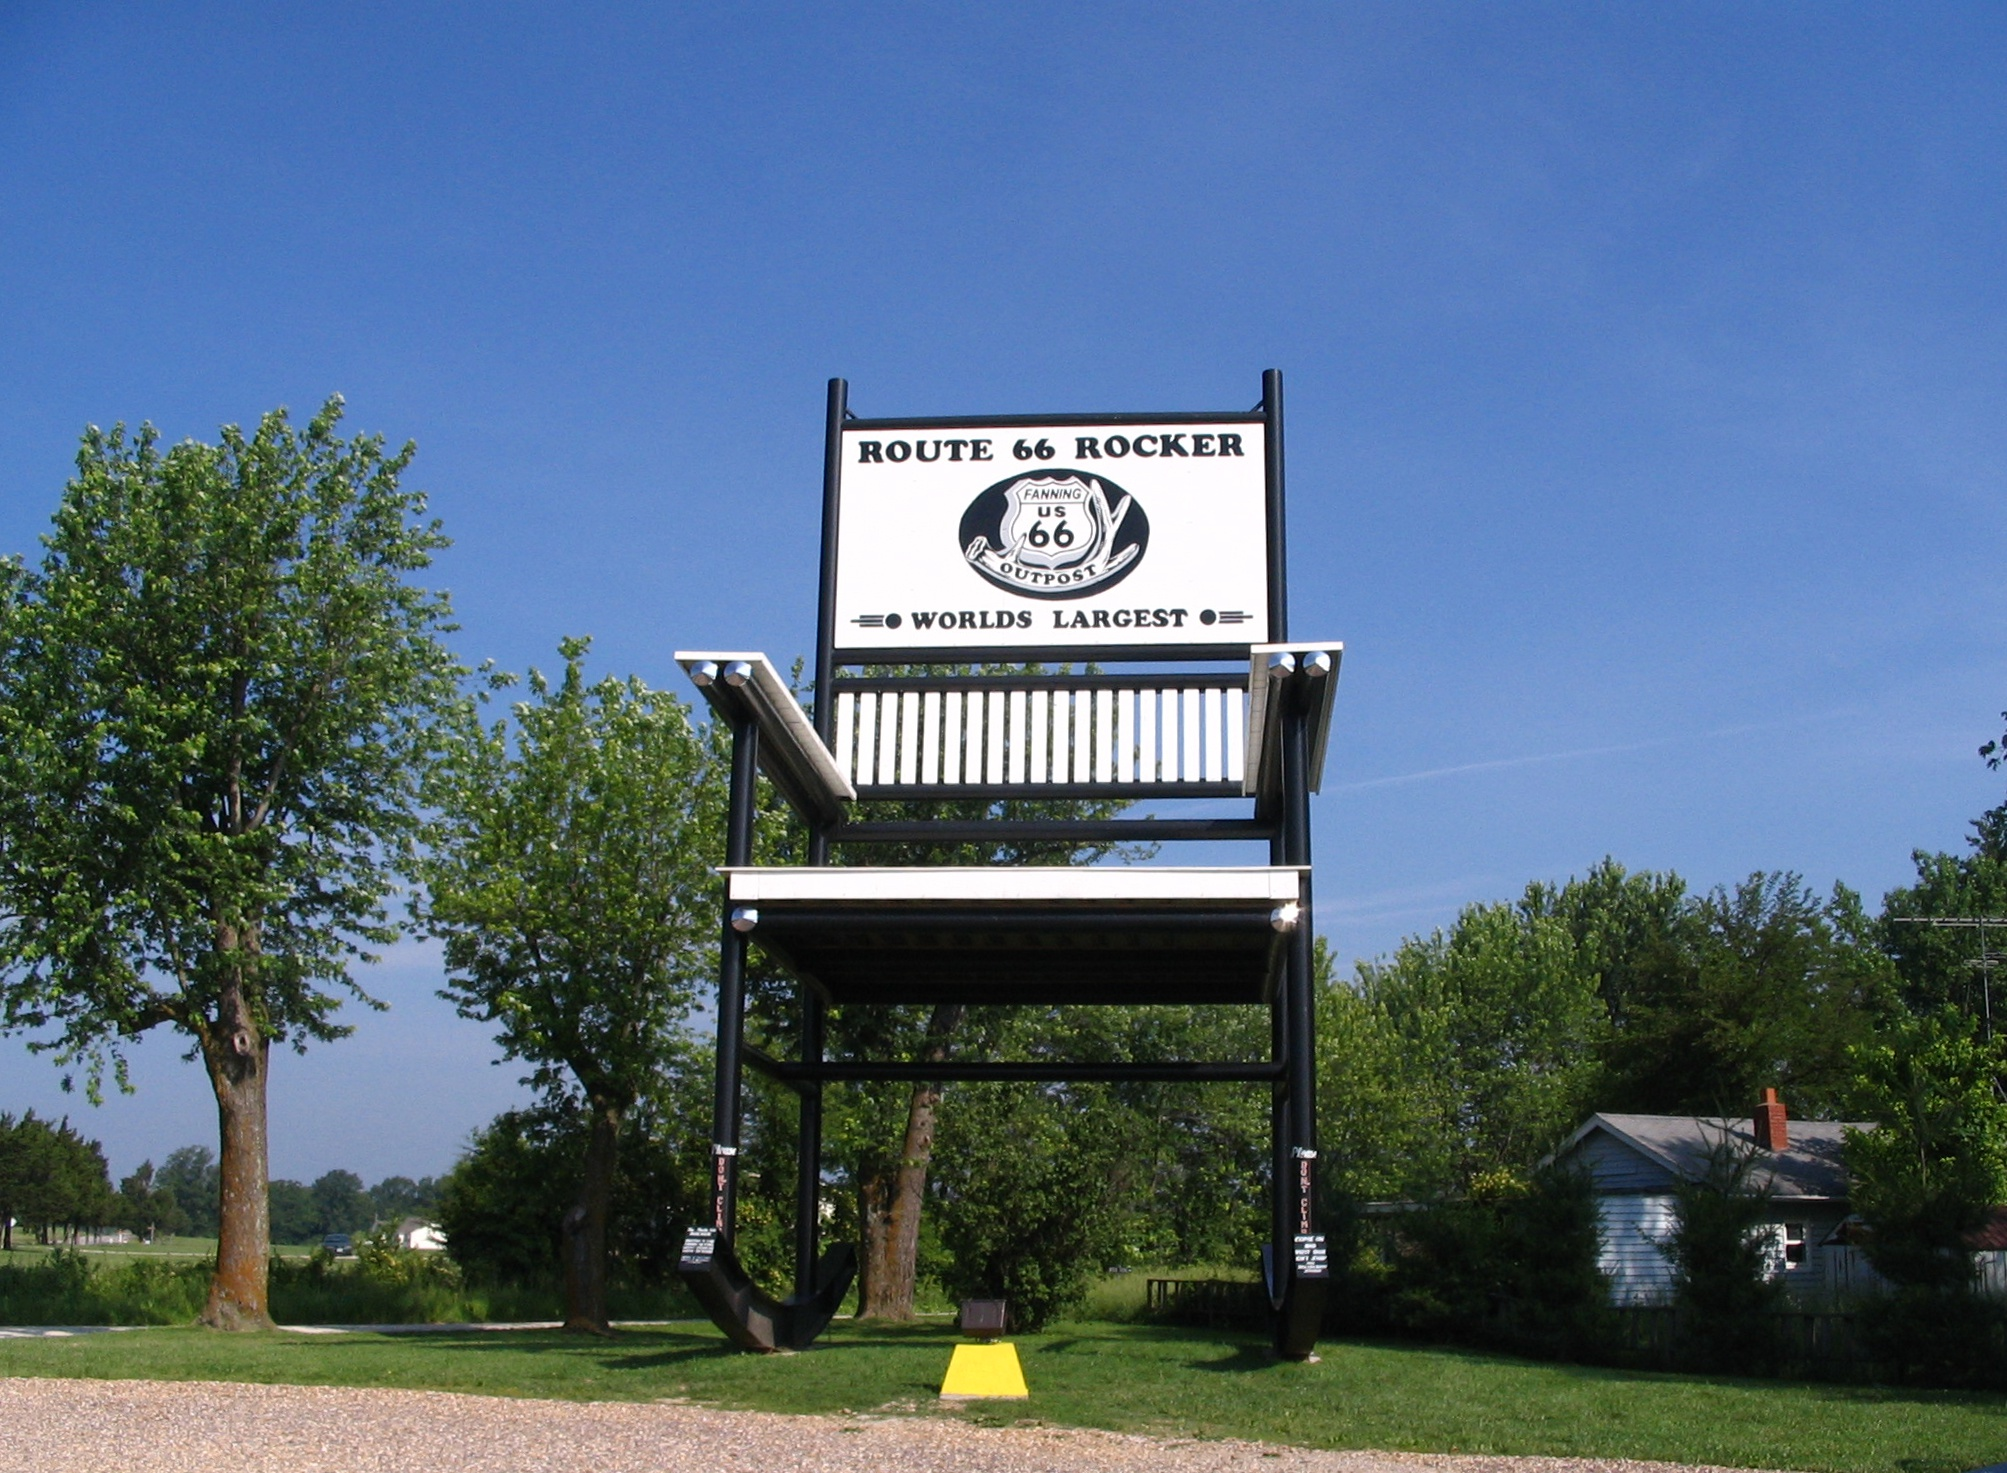 Fun Fact: The Guiness World's Largest Rocking Chair is found along Route 66 in Fanning, Missouri.